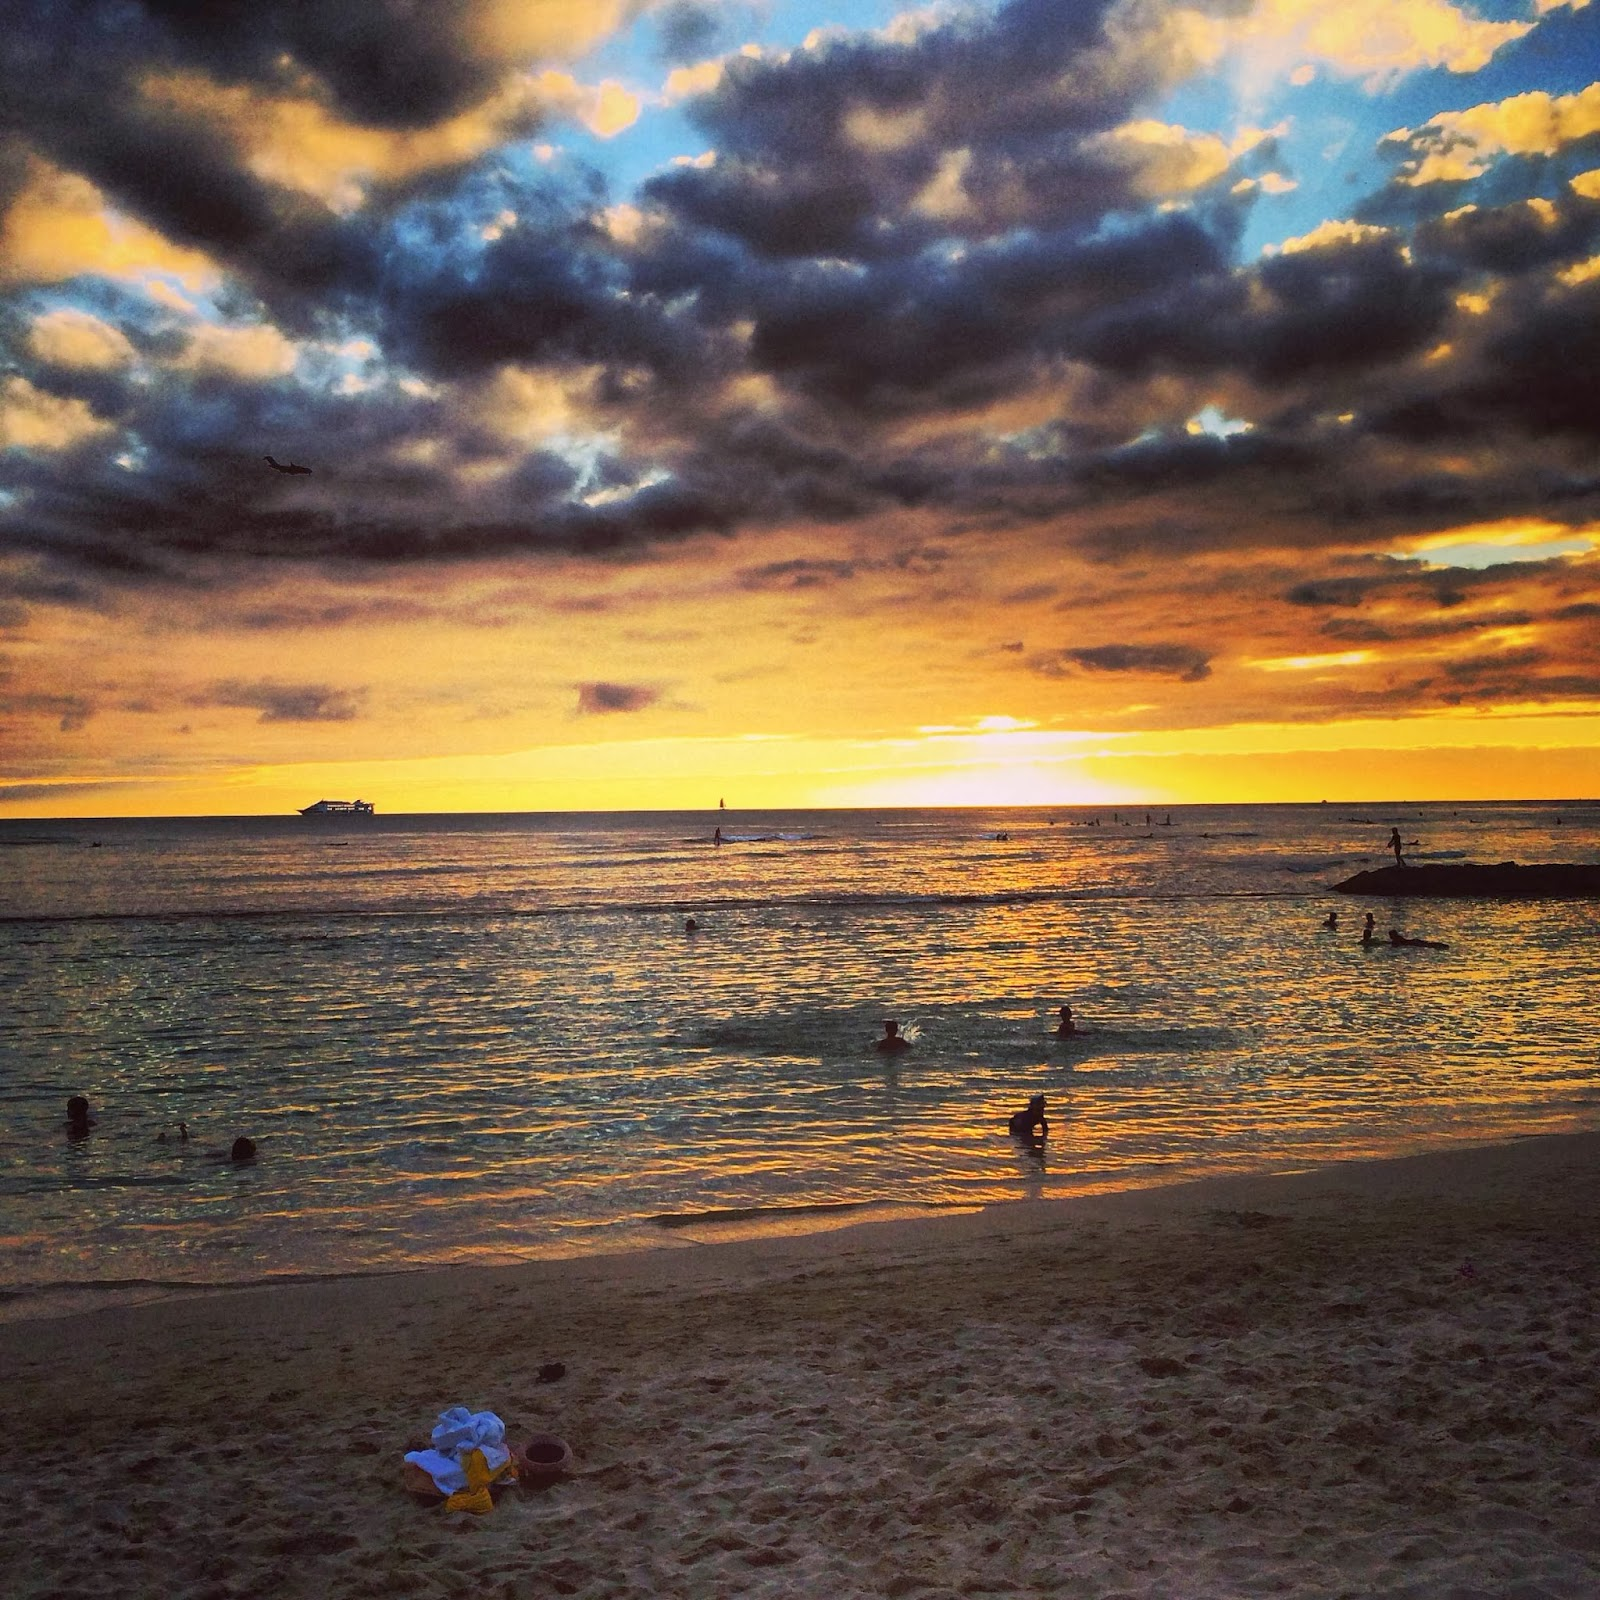 Private Beaches: Hawaii Expedition February 22